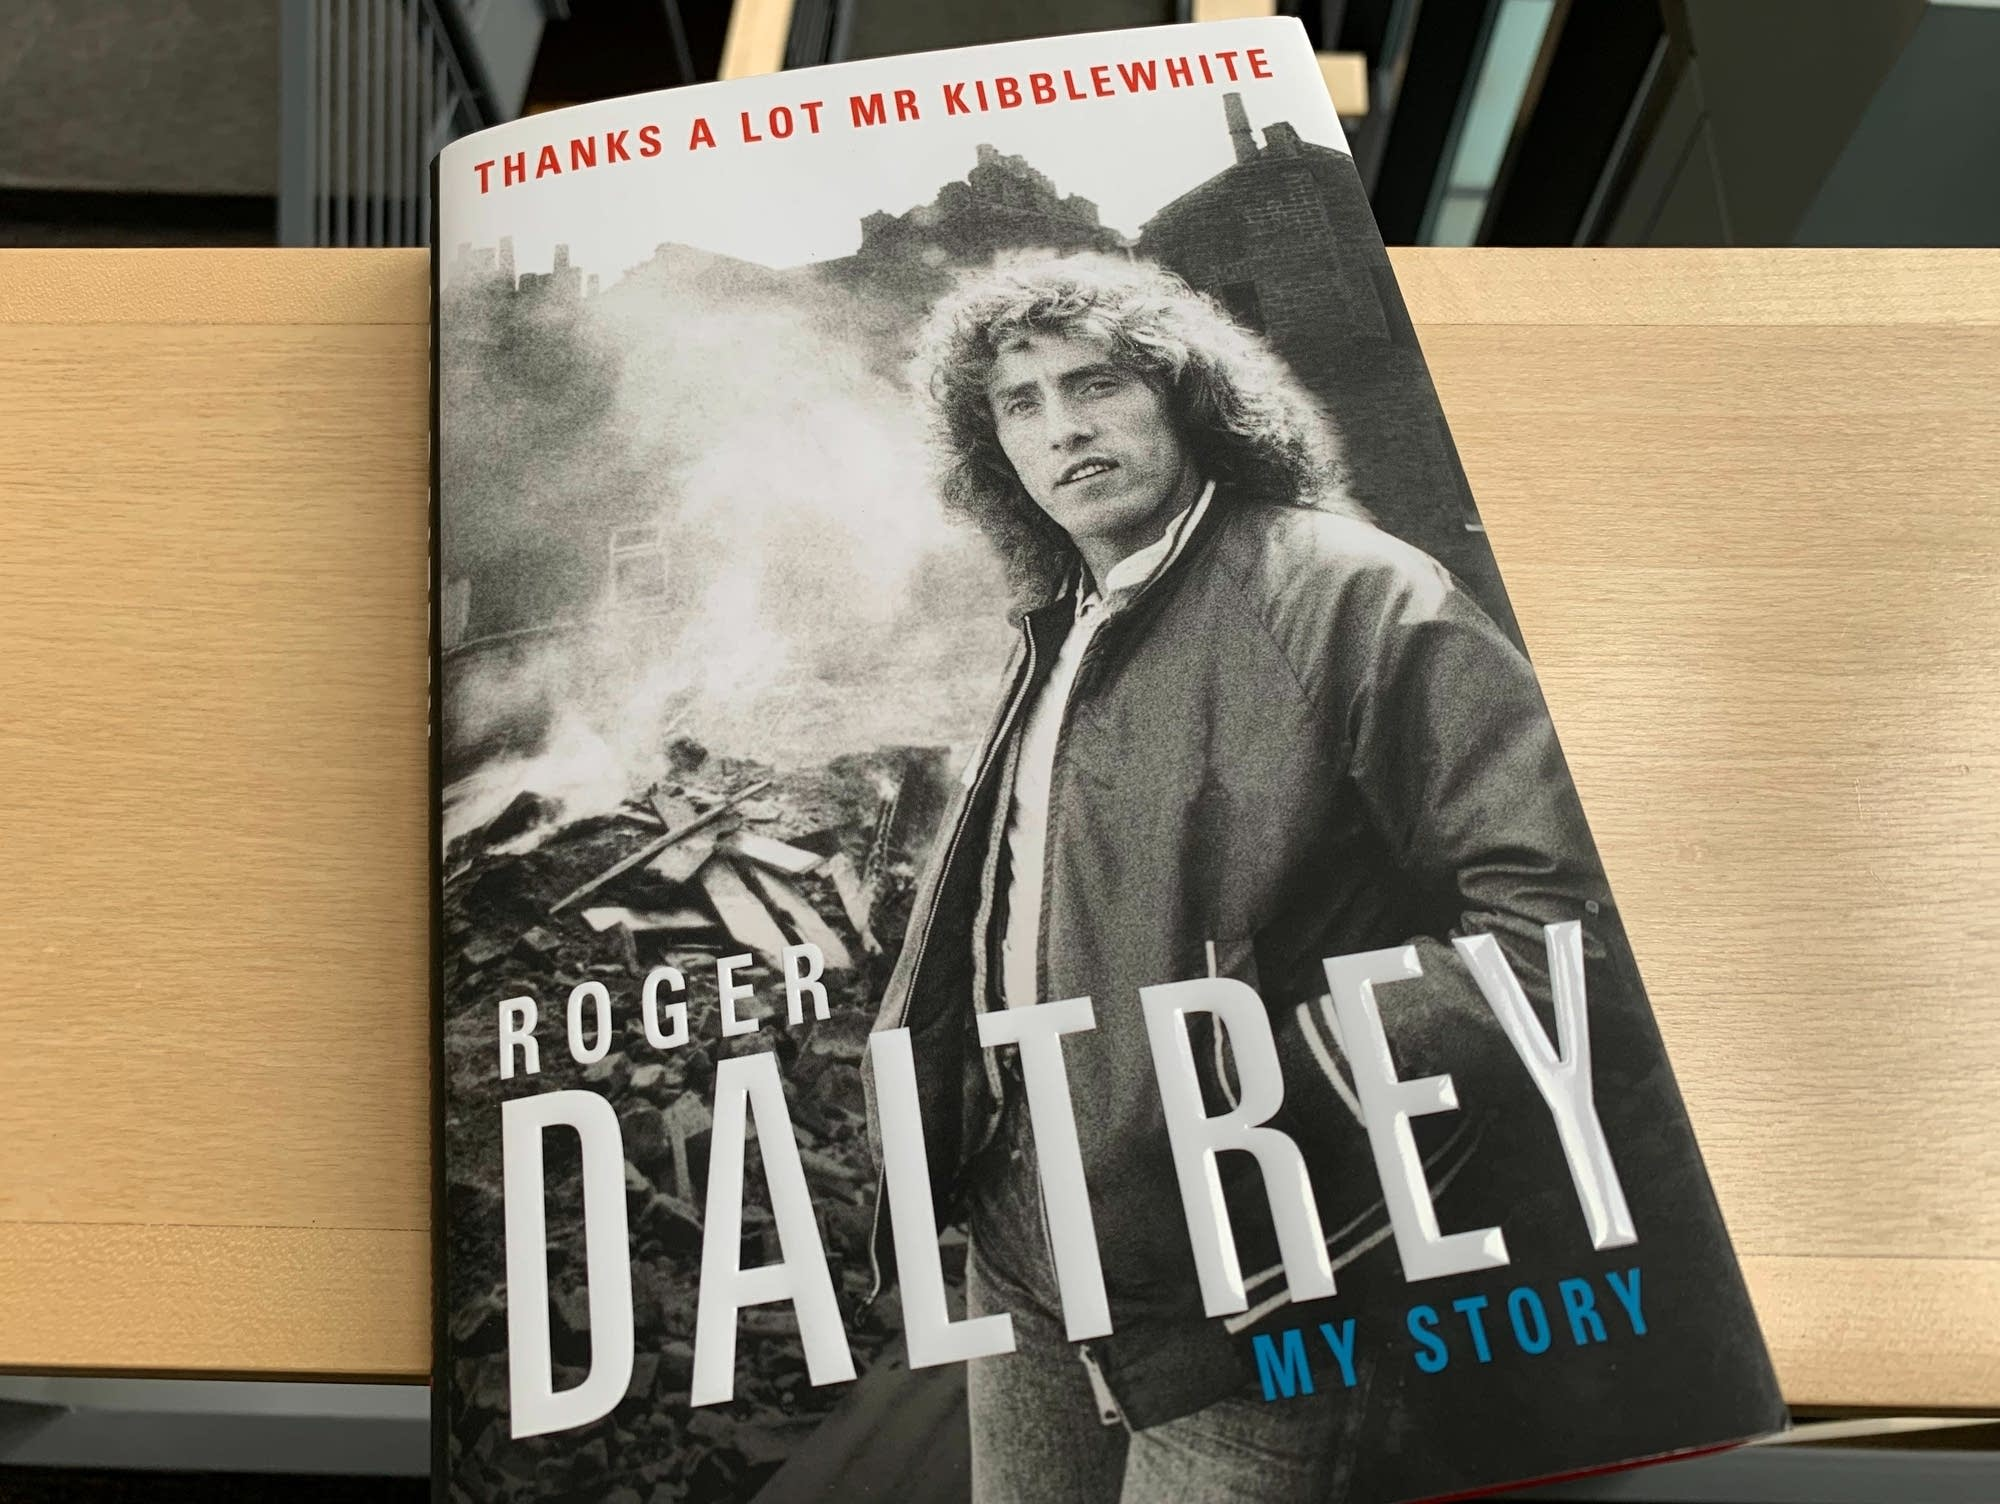 Roger Daltrey's 'Thanks a Lot Mr. Kibblewhite.'